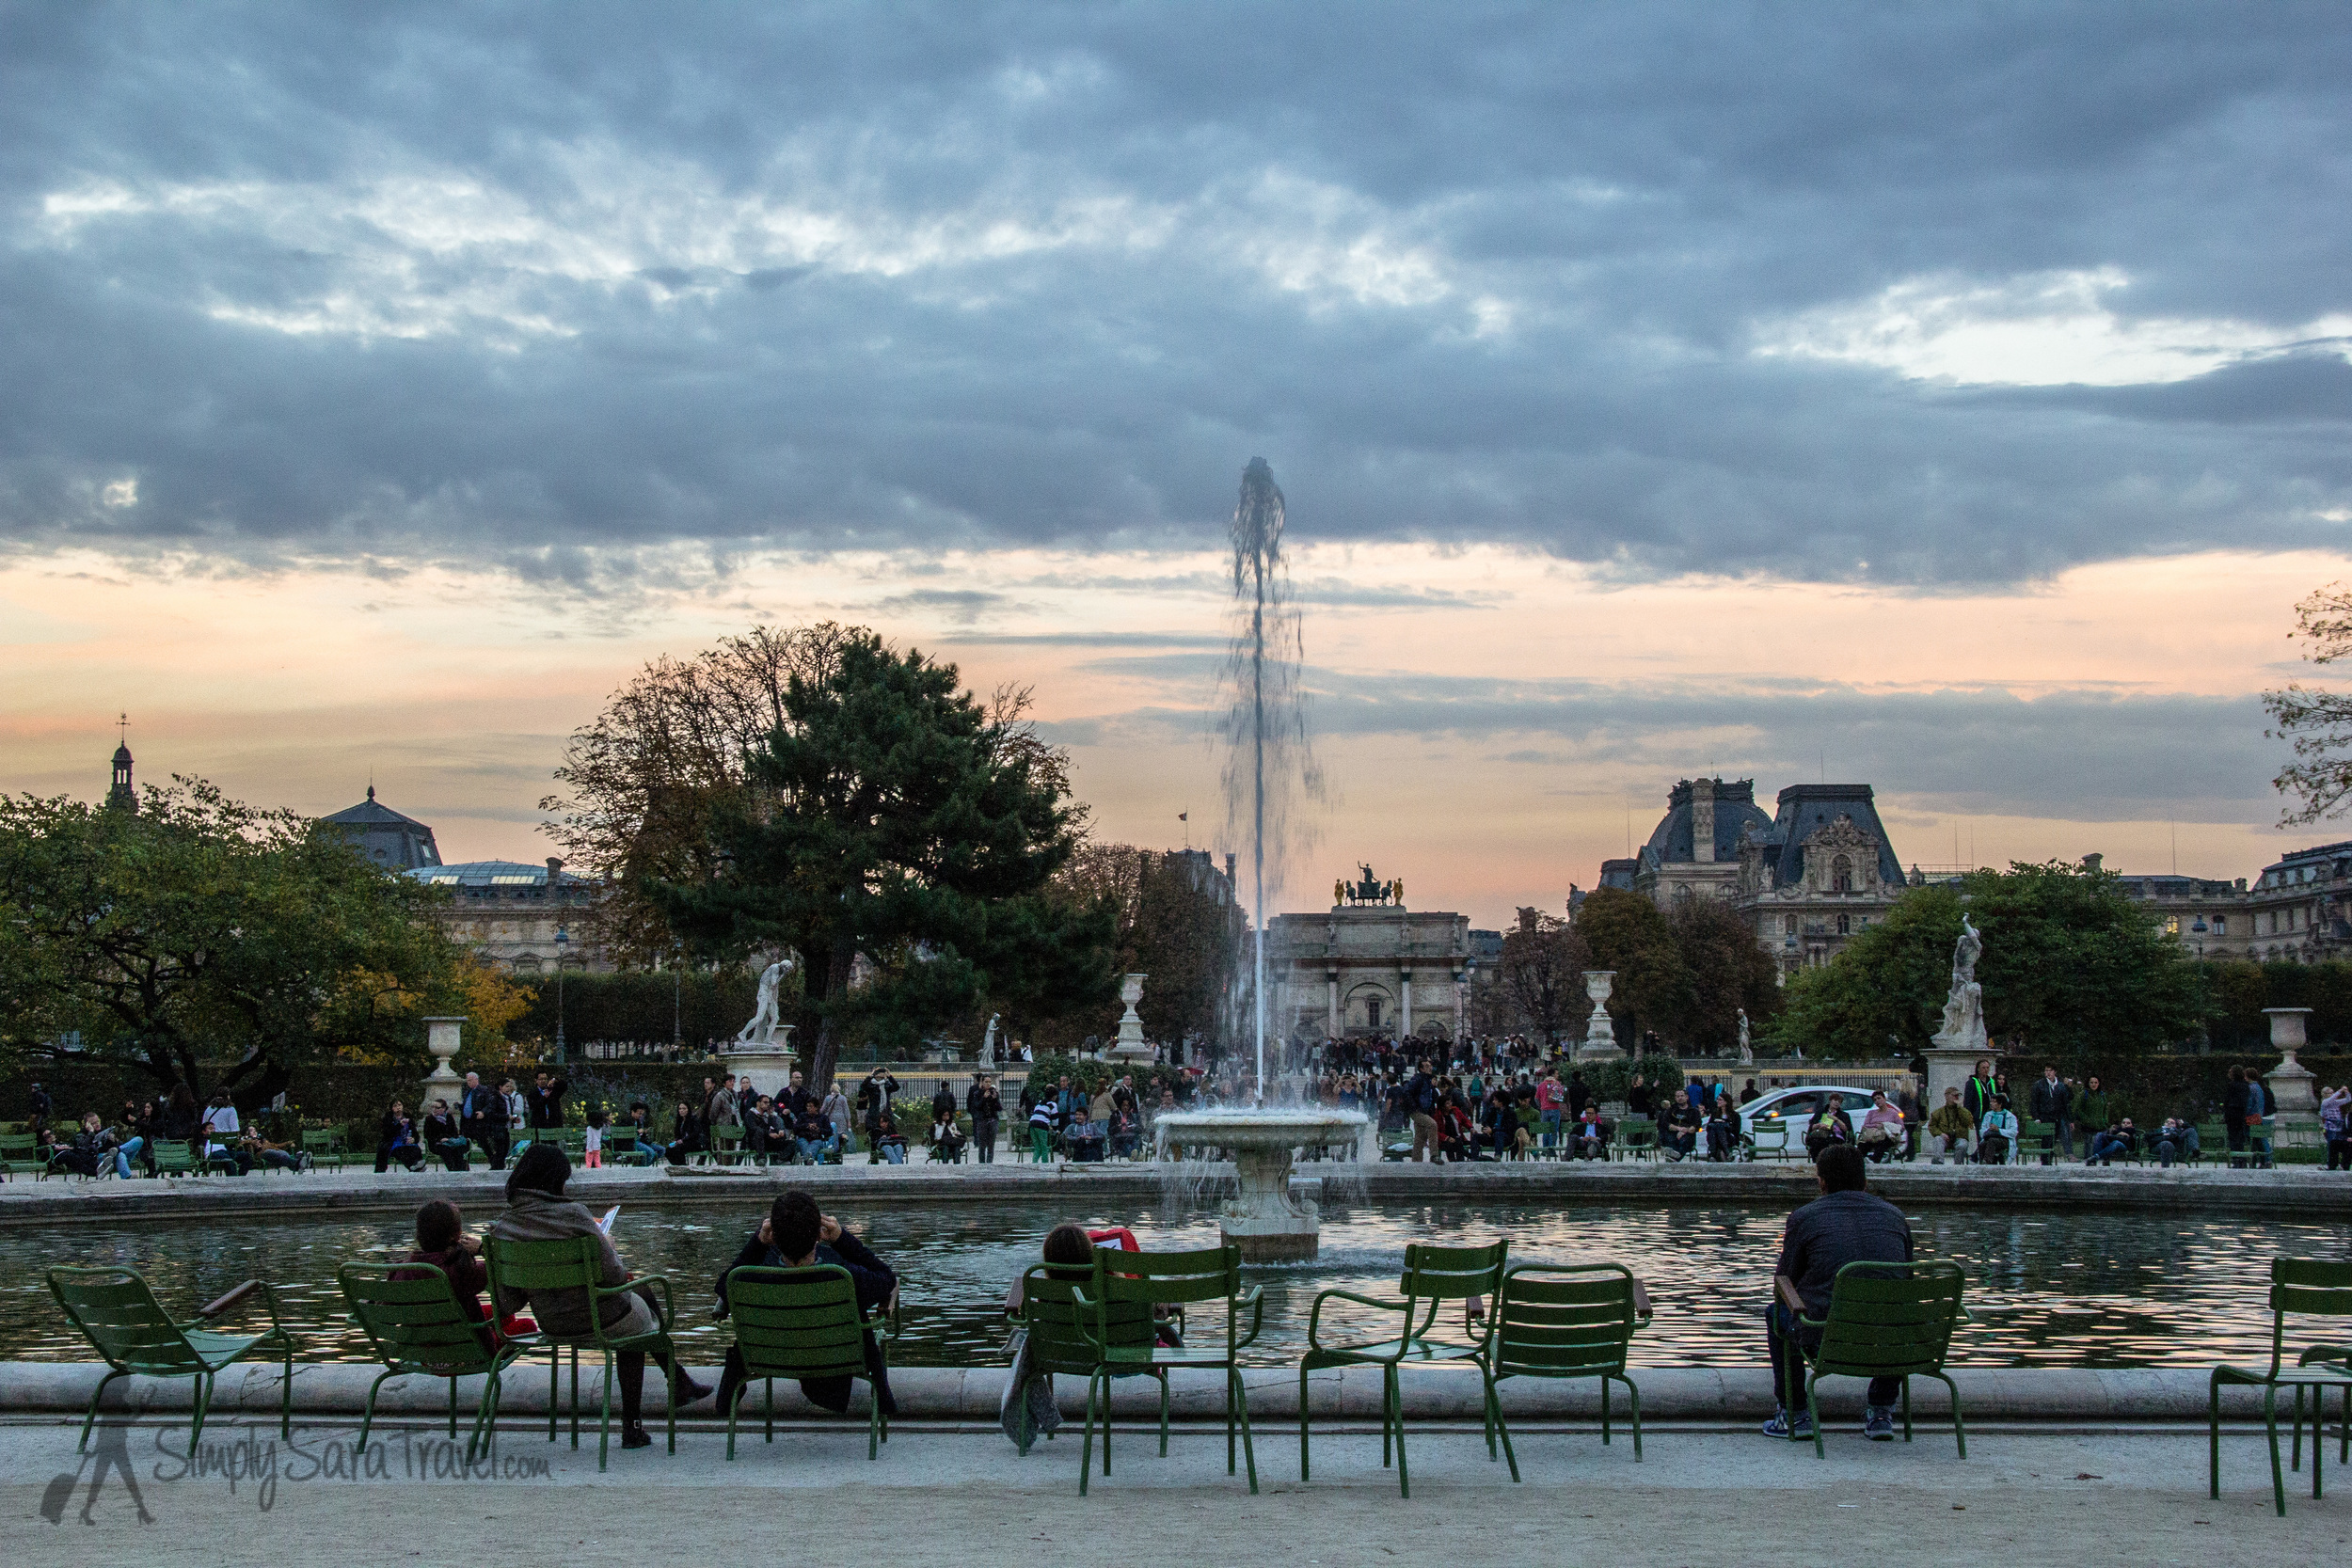 Sunset at Jardin des Tuileries looking towards the Louvre